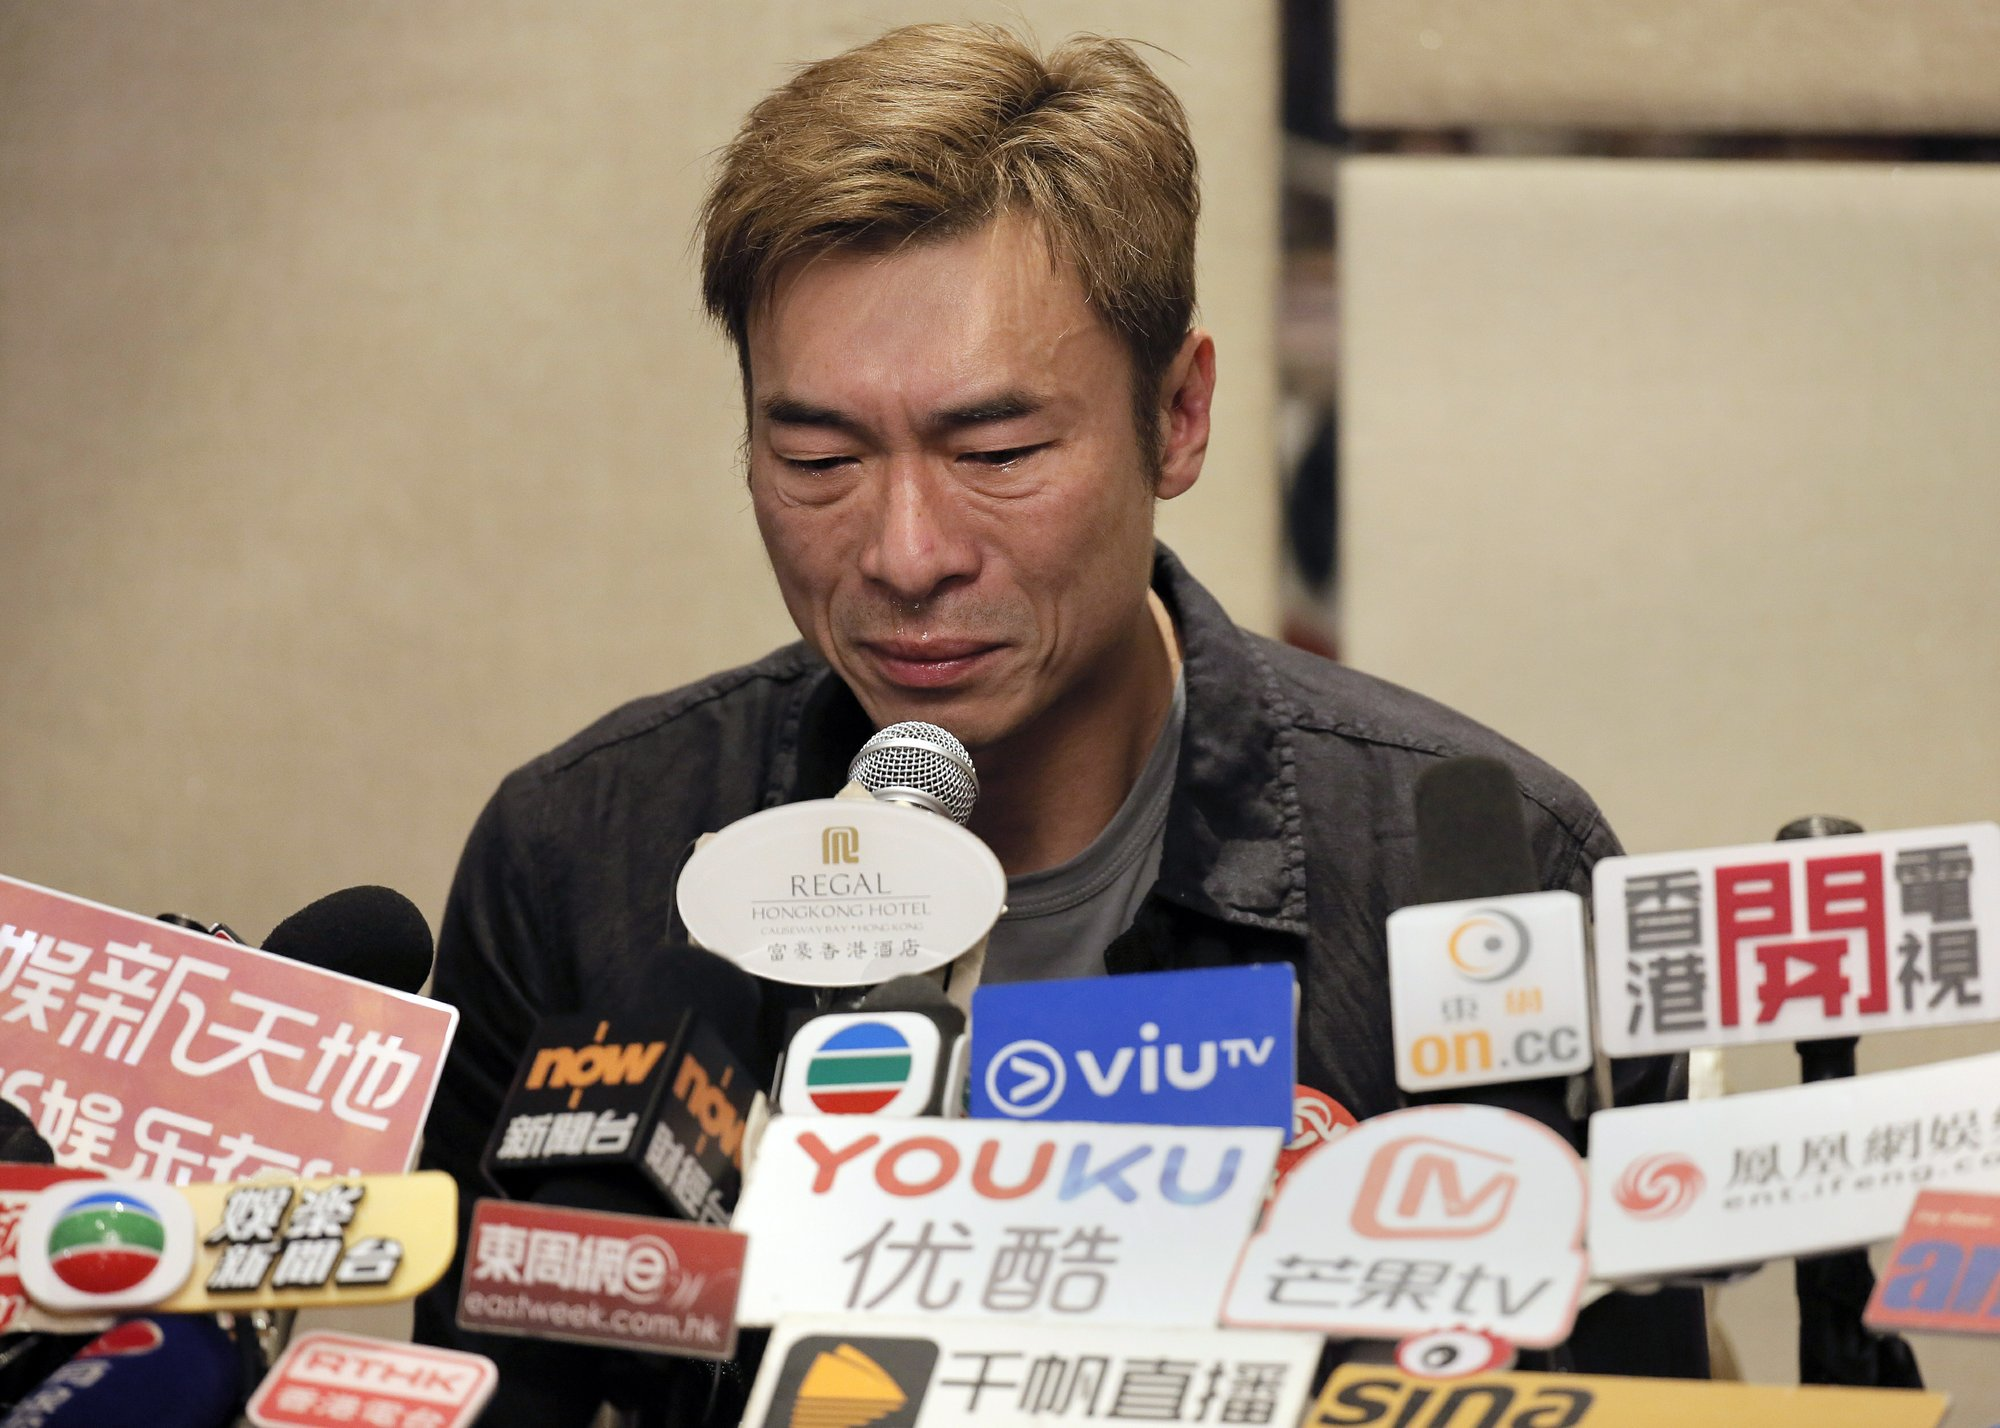 Andy Hui apologizes after taxi camera captures infidelity